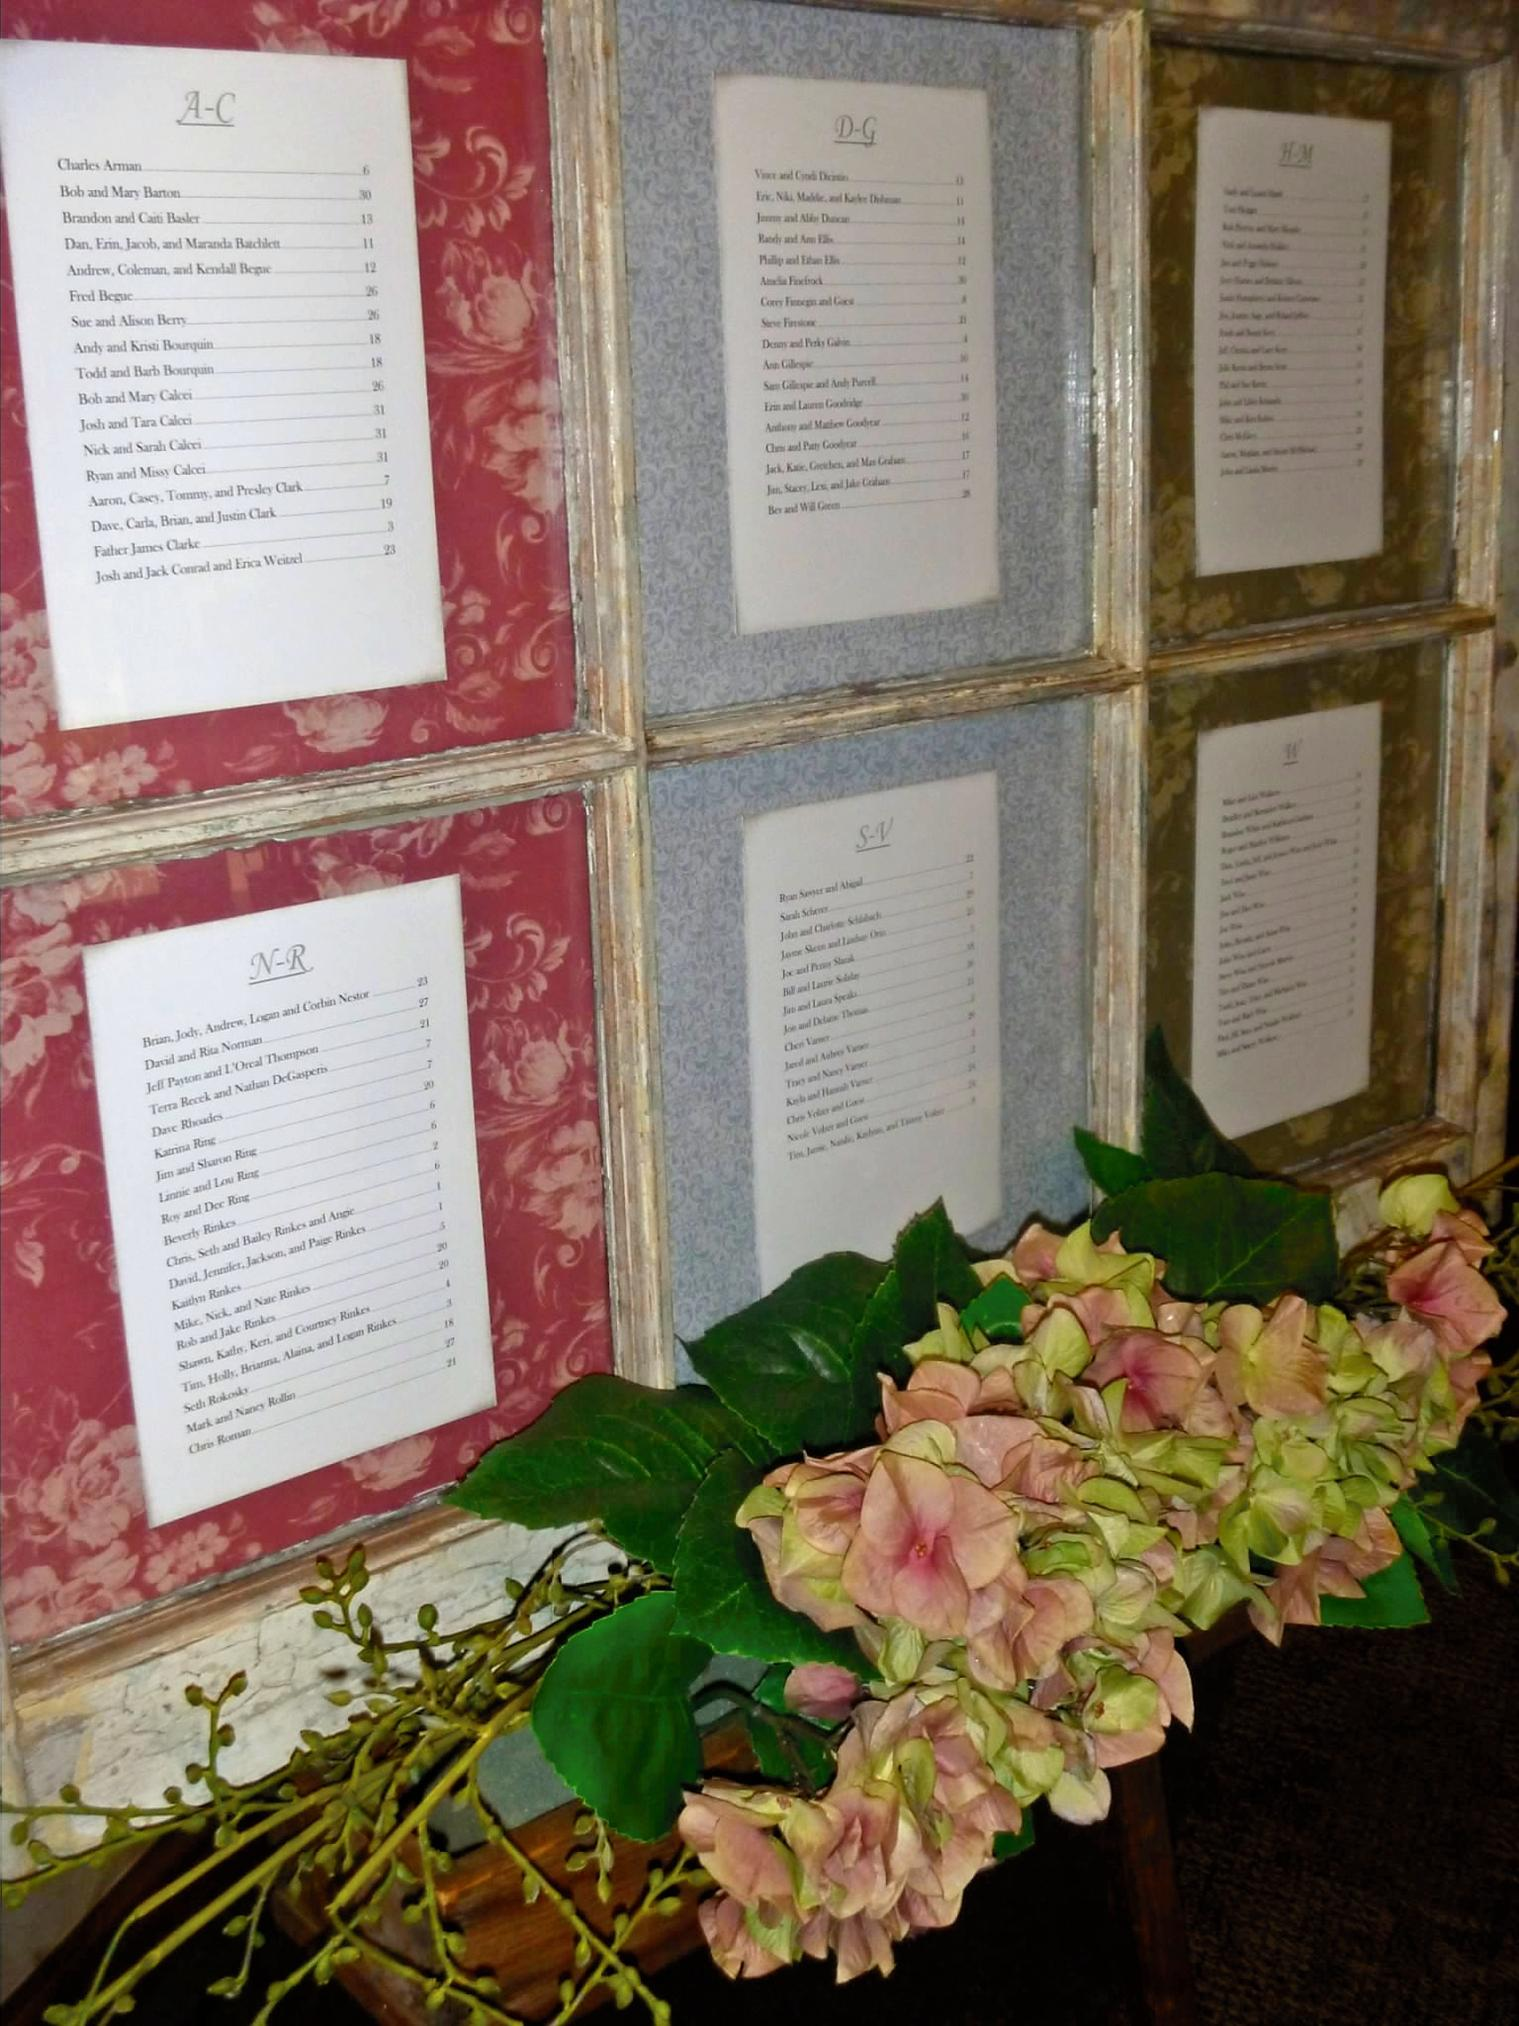 The Wedding March Window Panes And Other Signs Best Bib And Tucker